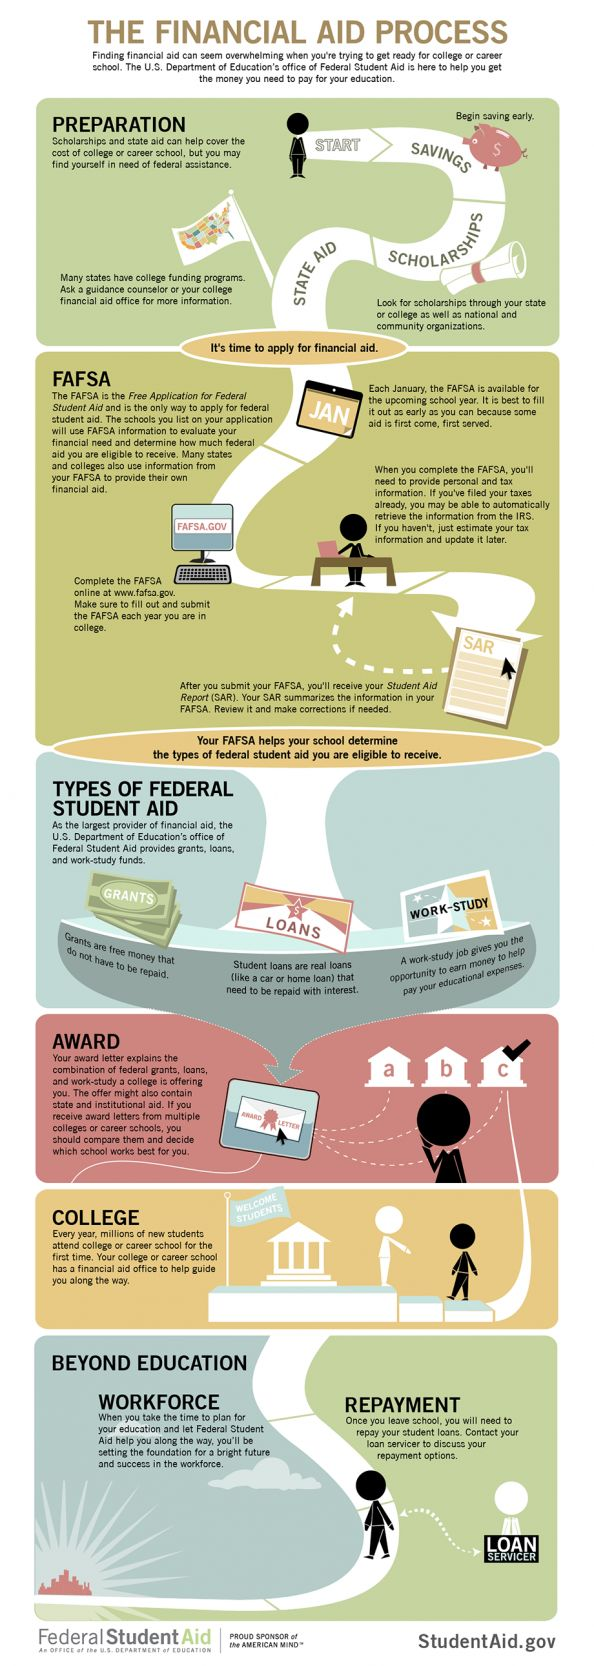 1000 images about college career usa today federal student aid this is a link to the federal student aid website and has all sorts of information on how to prepare for college such as a check list